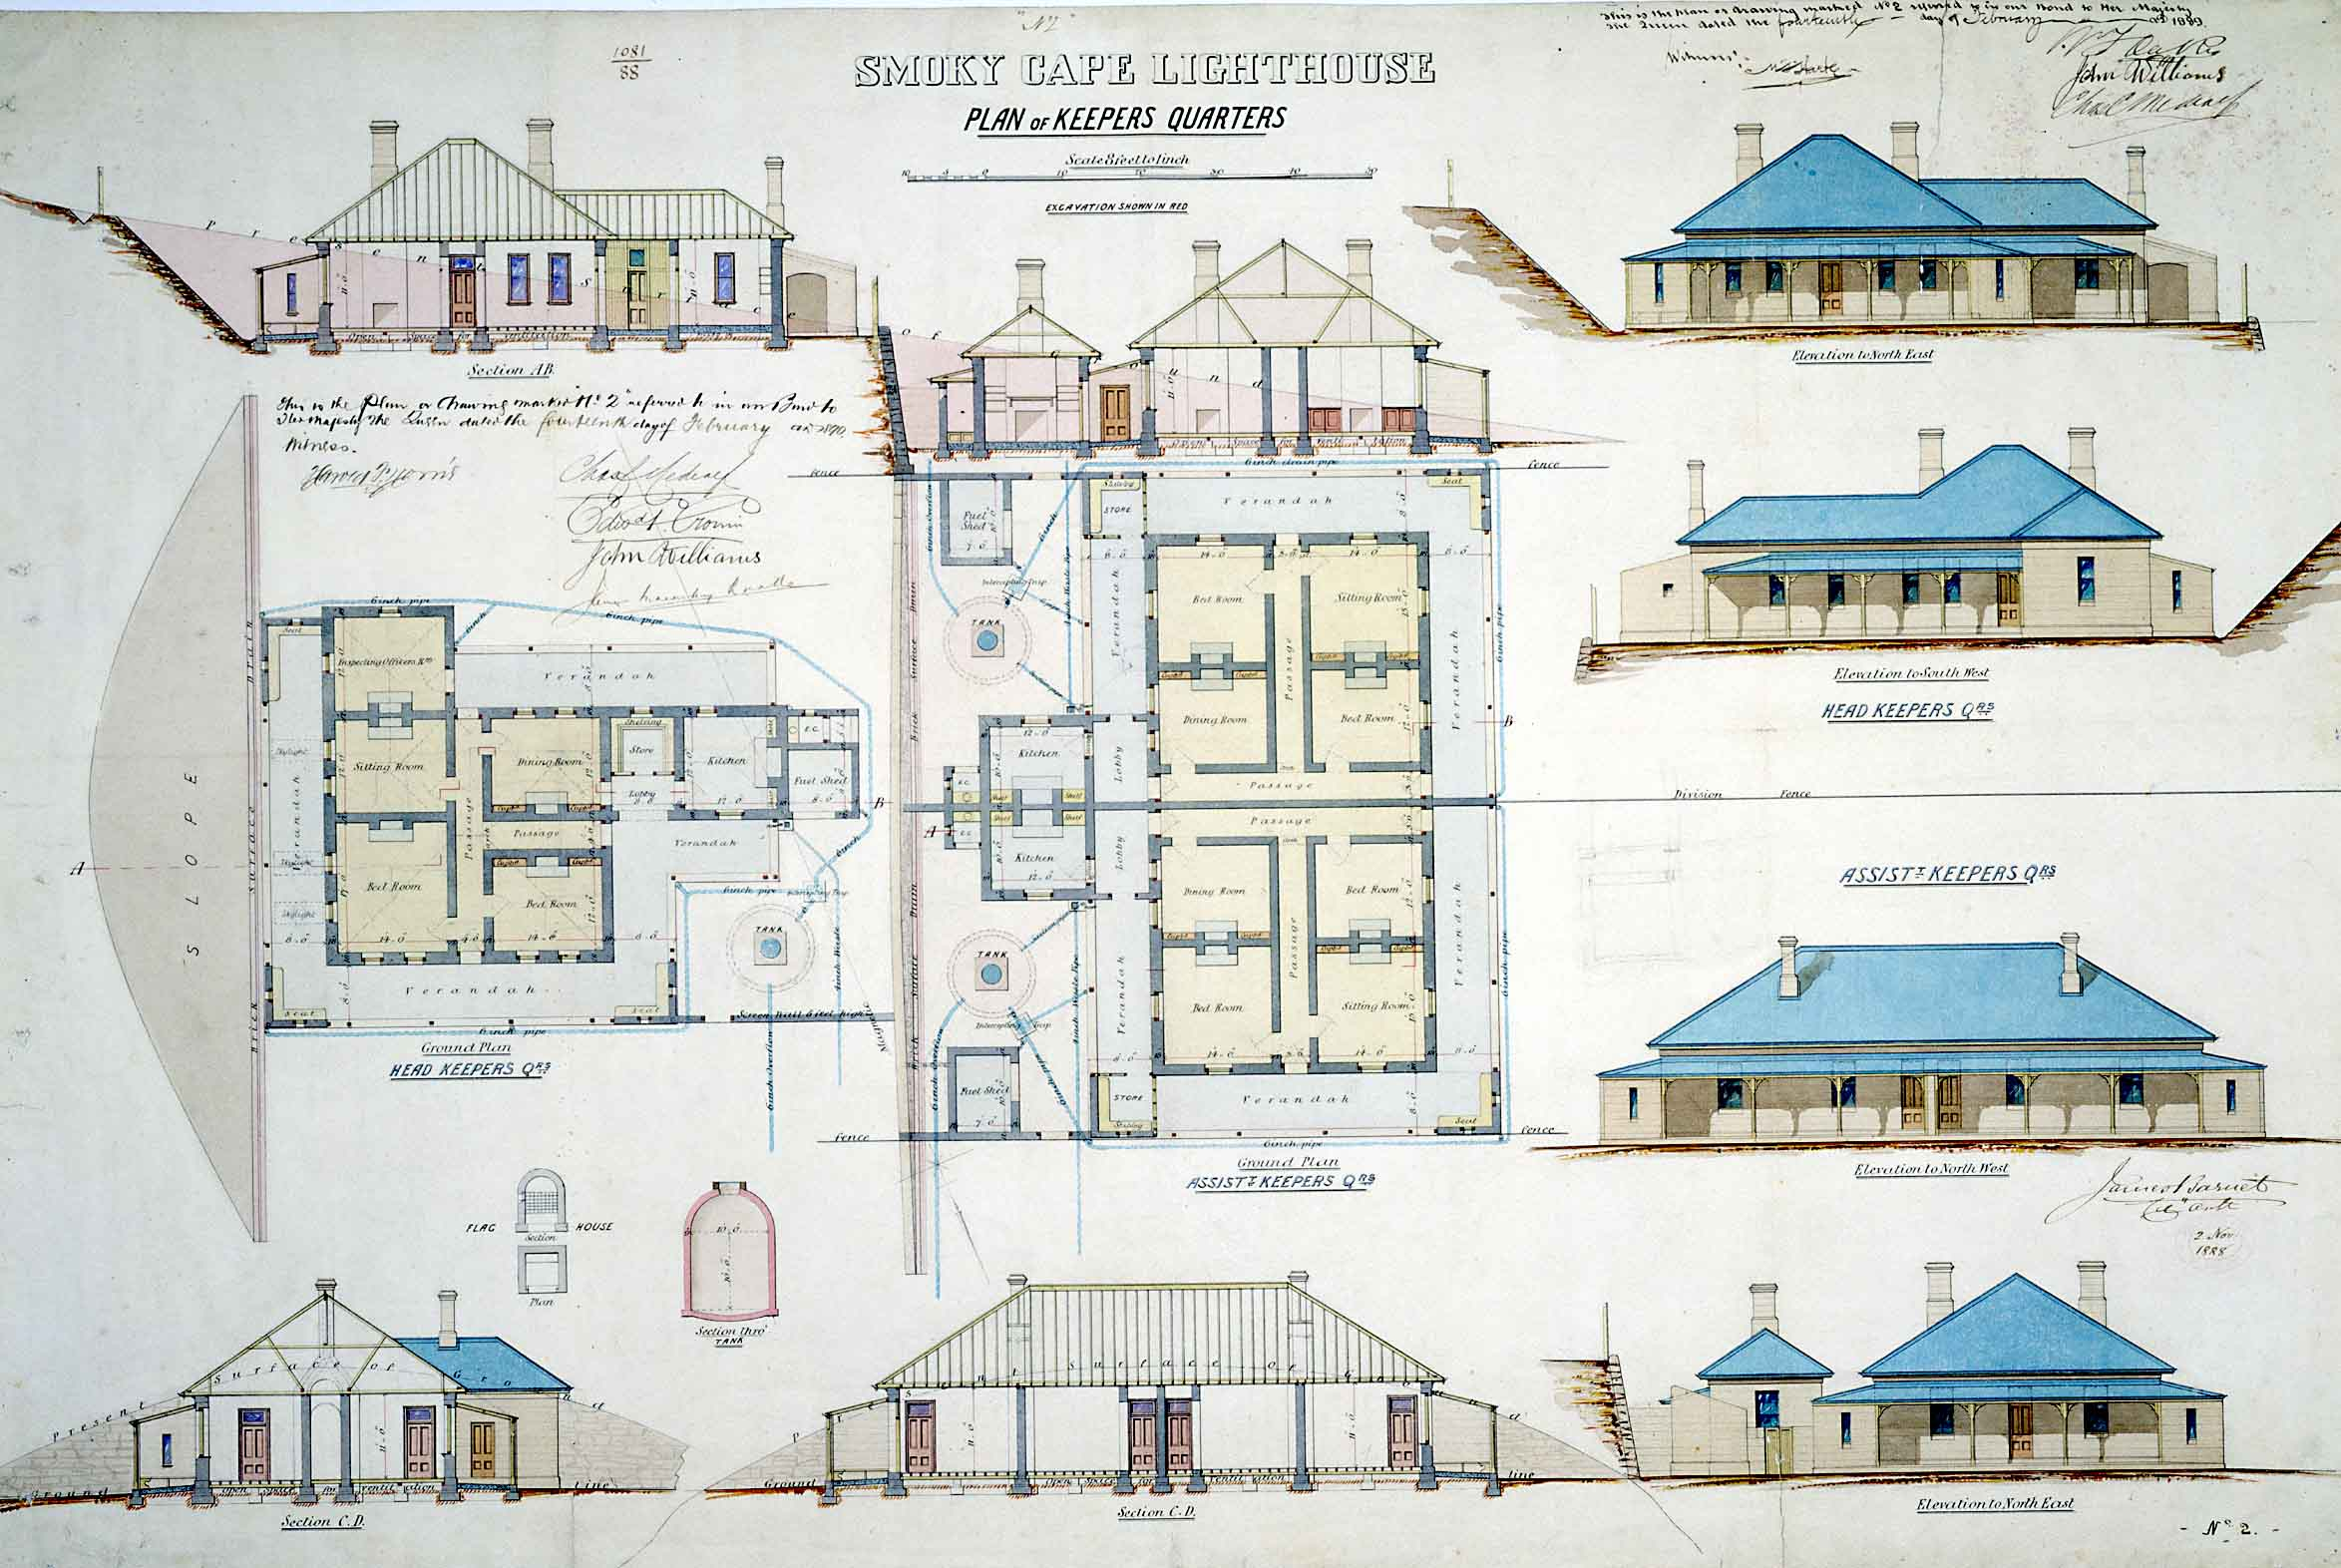 Keepers' quarters plans, 1888